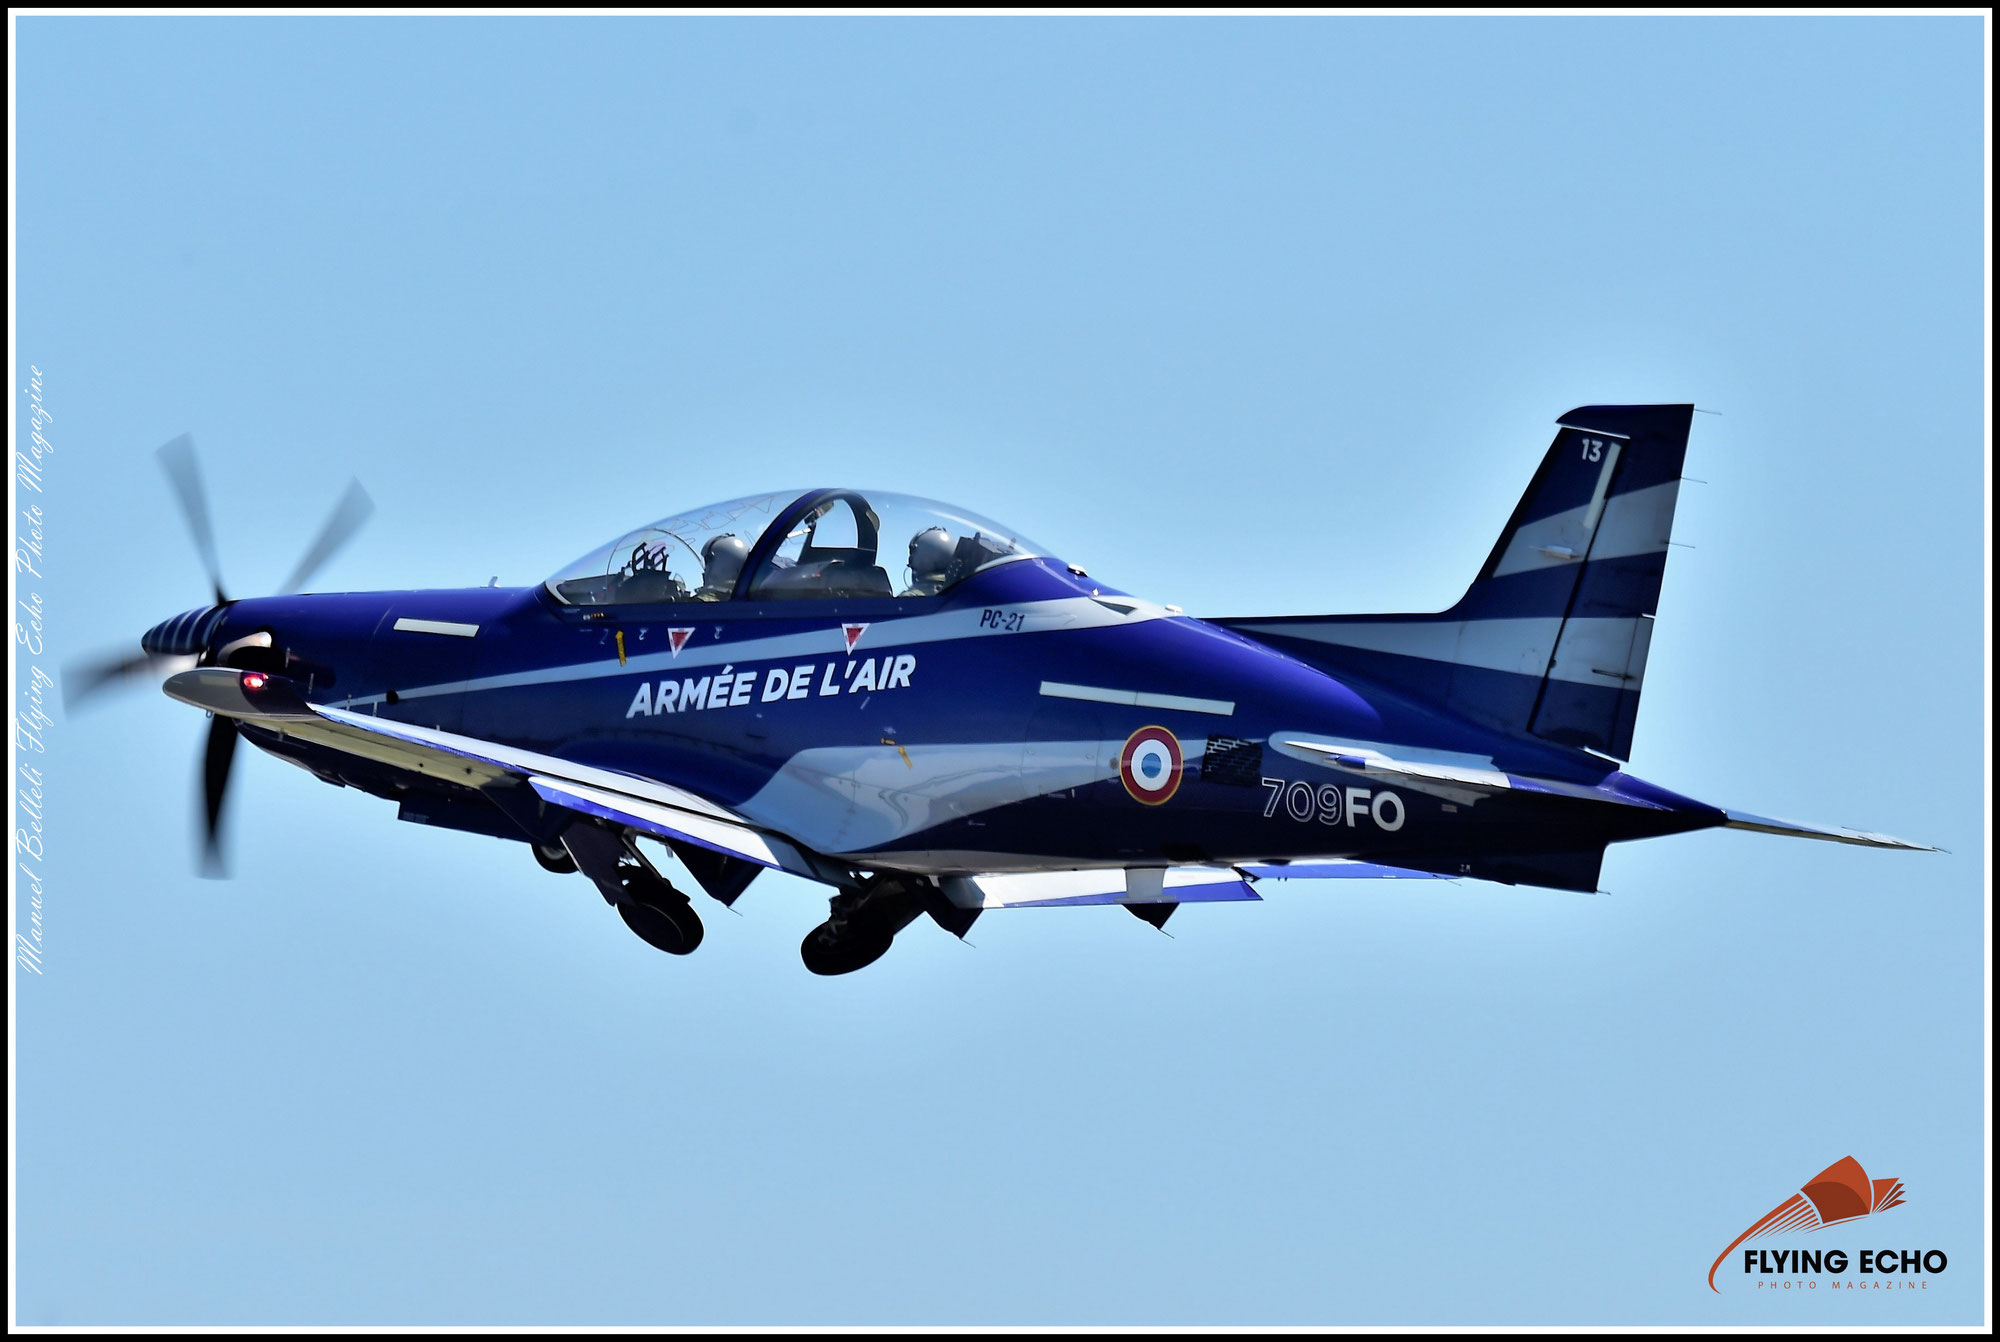 The French Air Force Buys Another Nine PC-21